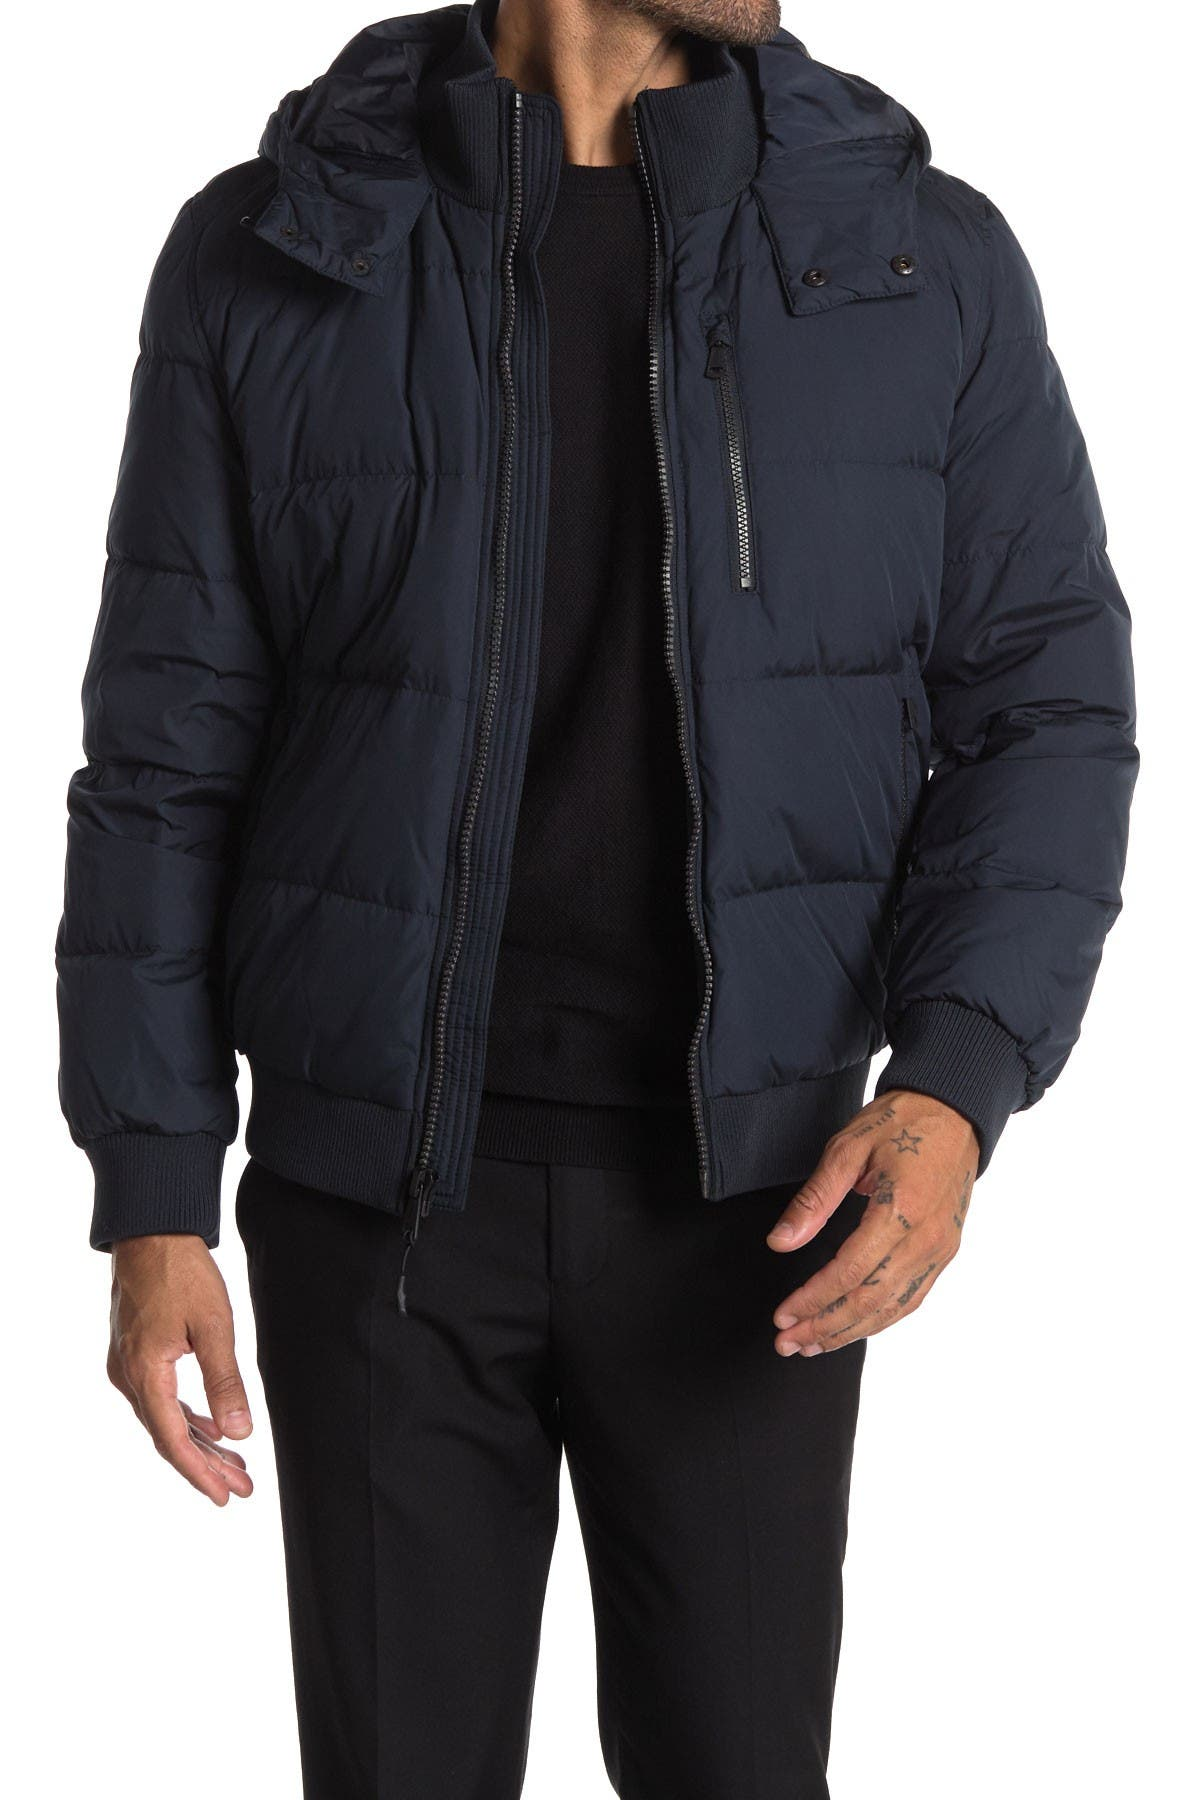 Image of Cole Haan Soft Touch Hooded Bomber Jacket